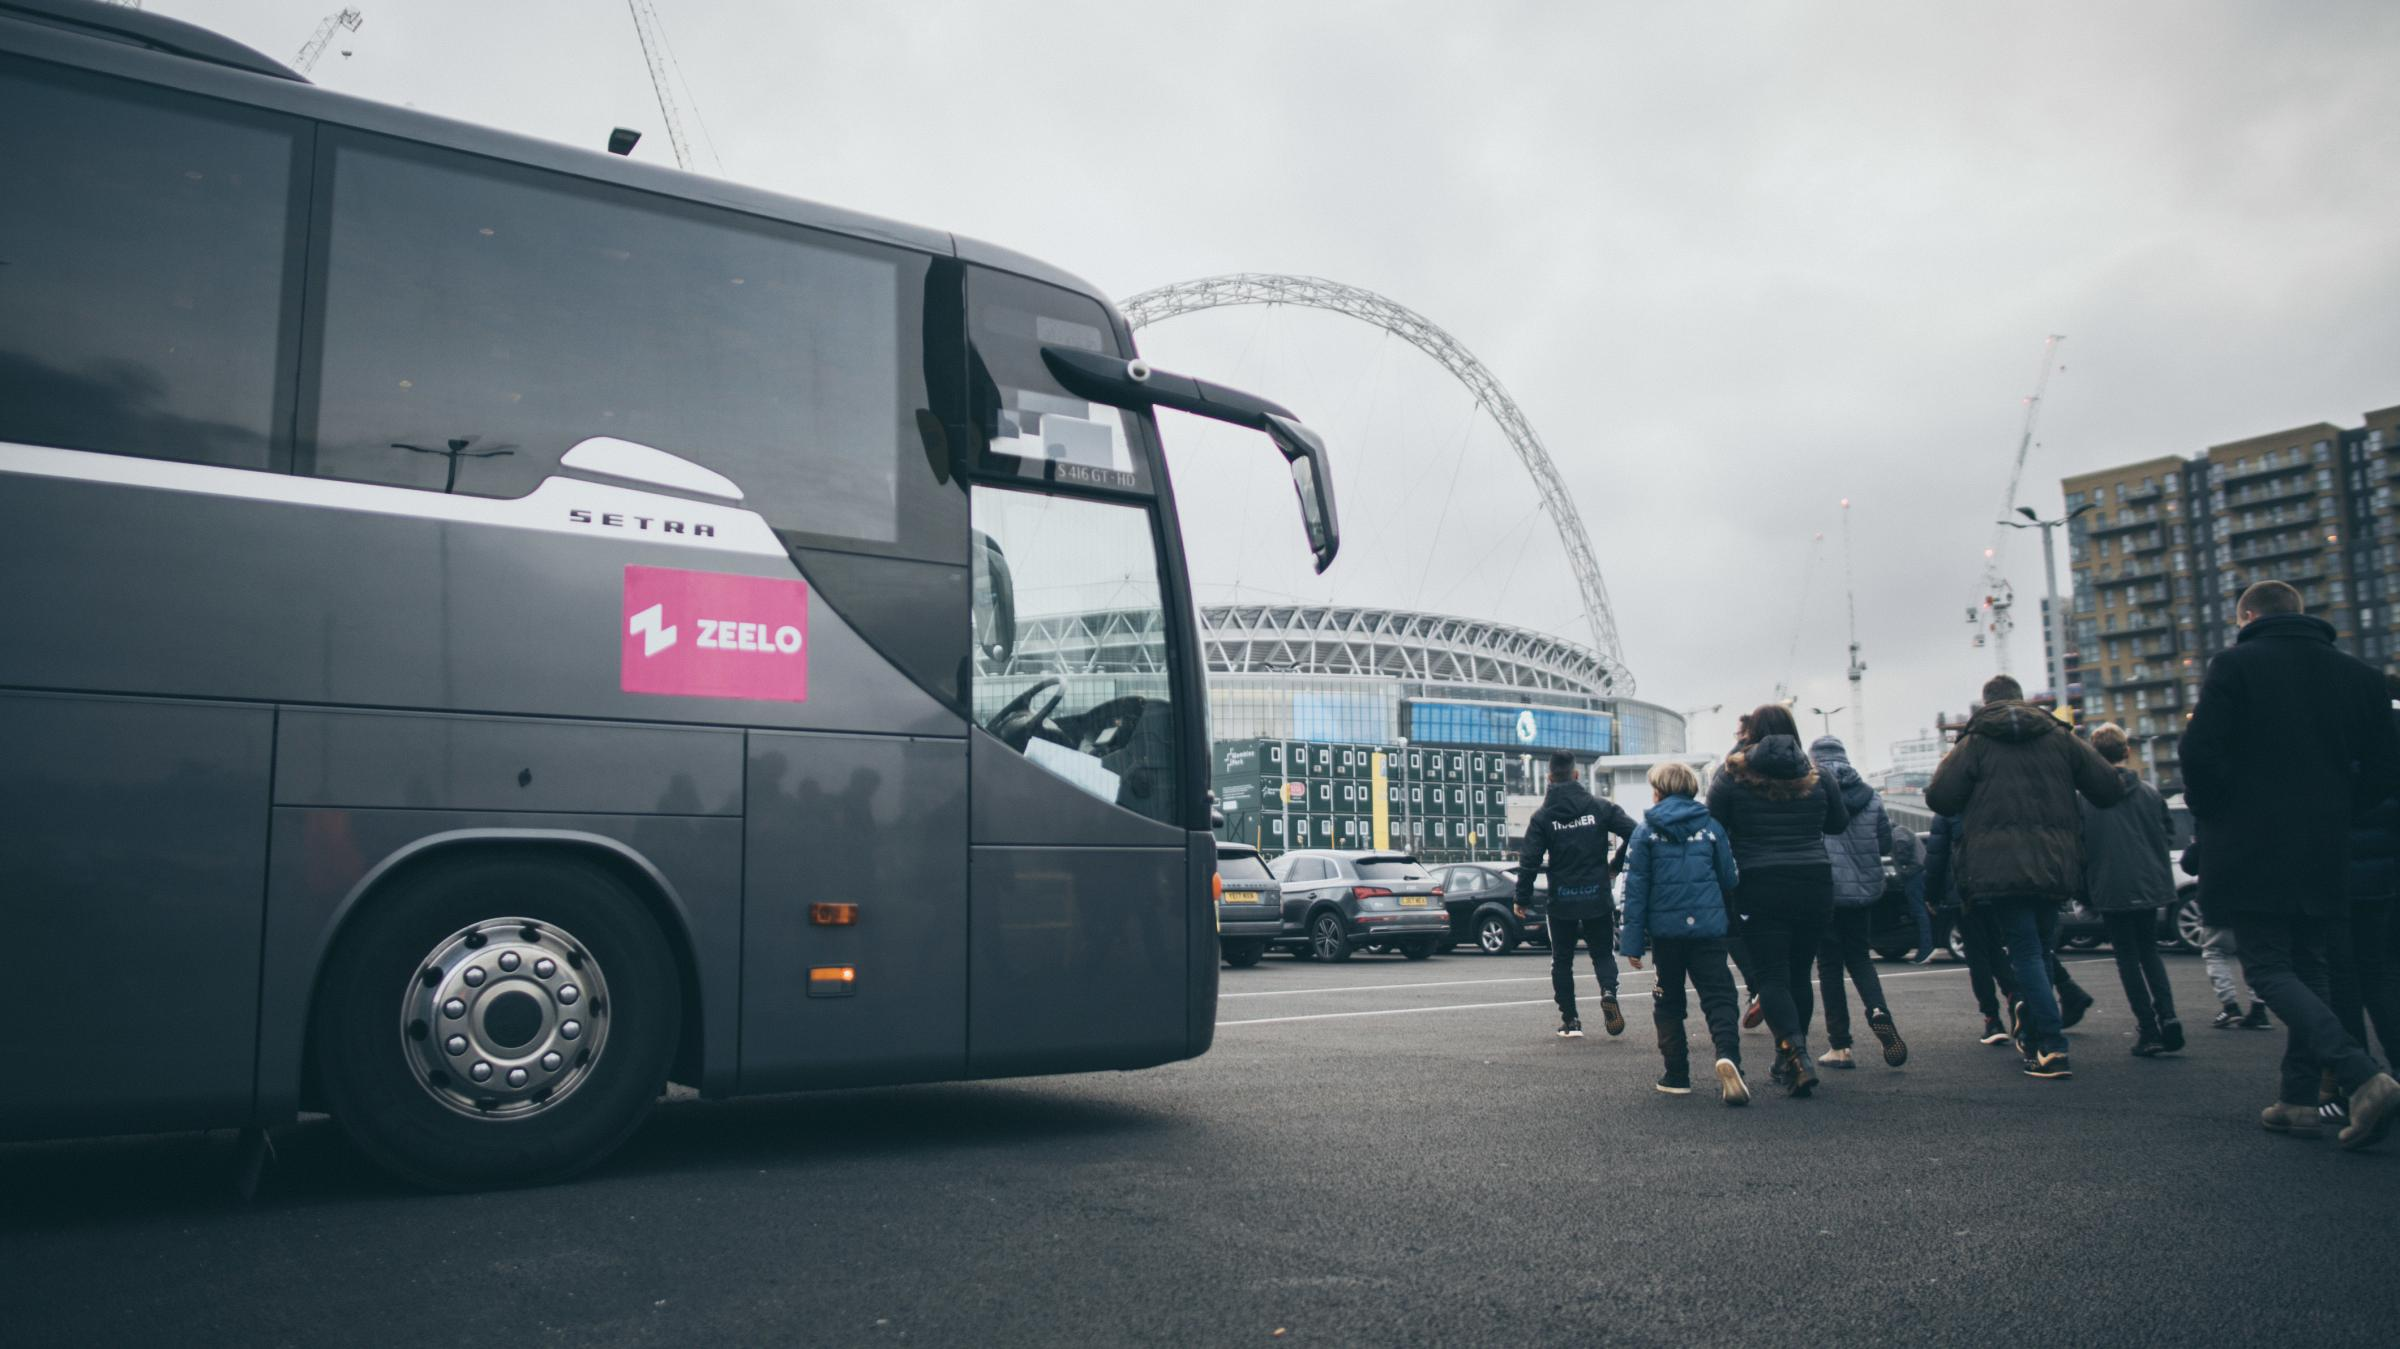 Zeelo offering free travel for fans for Challenge Cup final